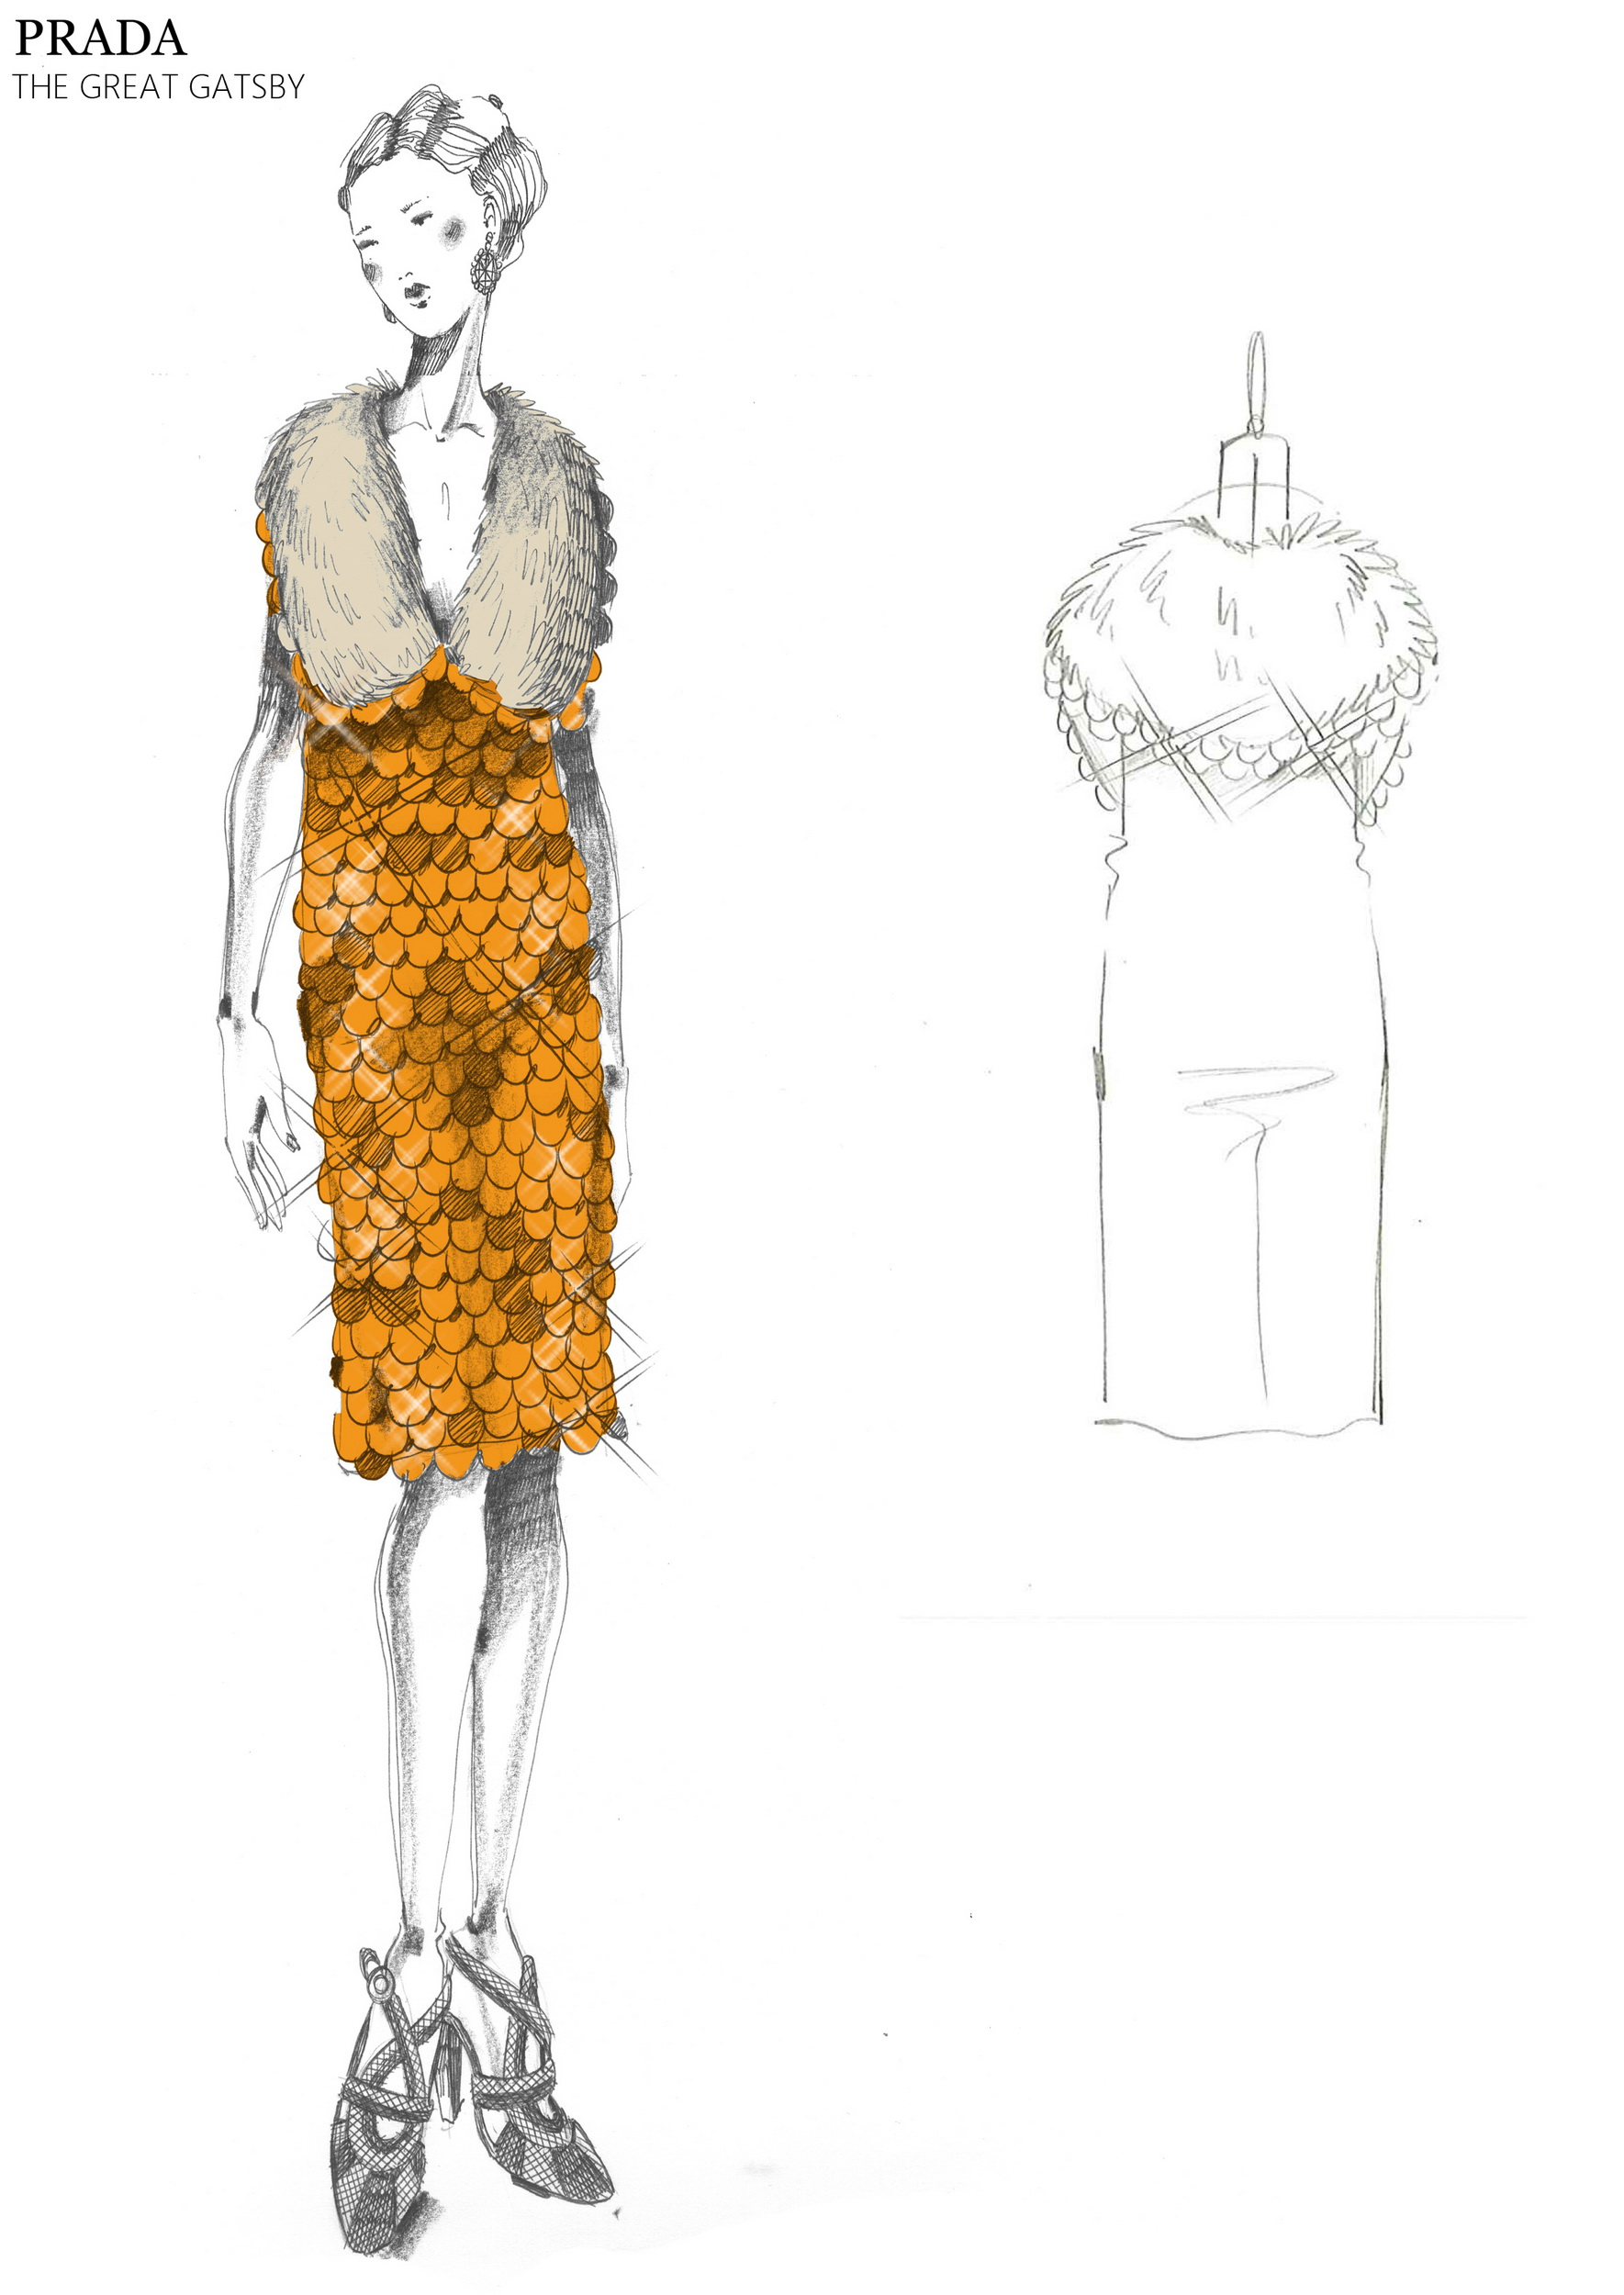 PRADA_THE GREAT GATSBY_23